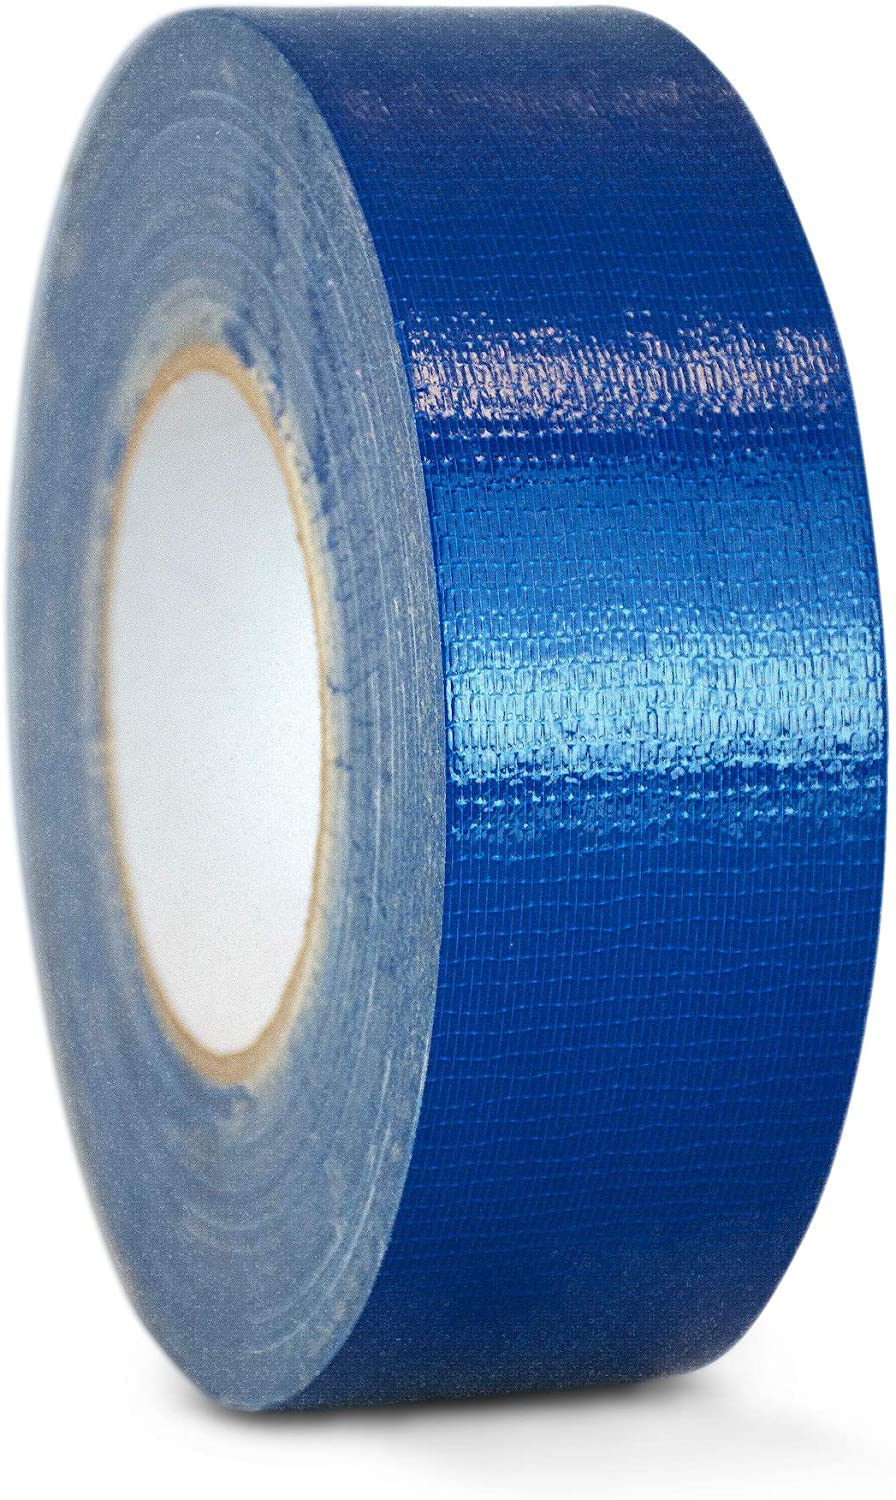 WOD DTC10 Advanced Strength Industrial Grade Dark Blue Duct Tape, 2.5 inch x 60 yds. Waterproof, UV Resistant For Crafts & Home Improvement